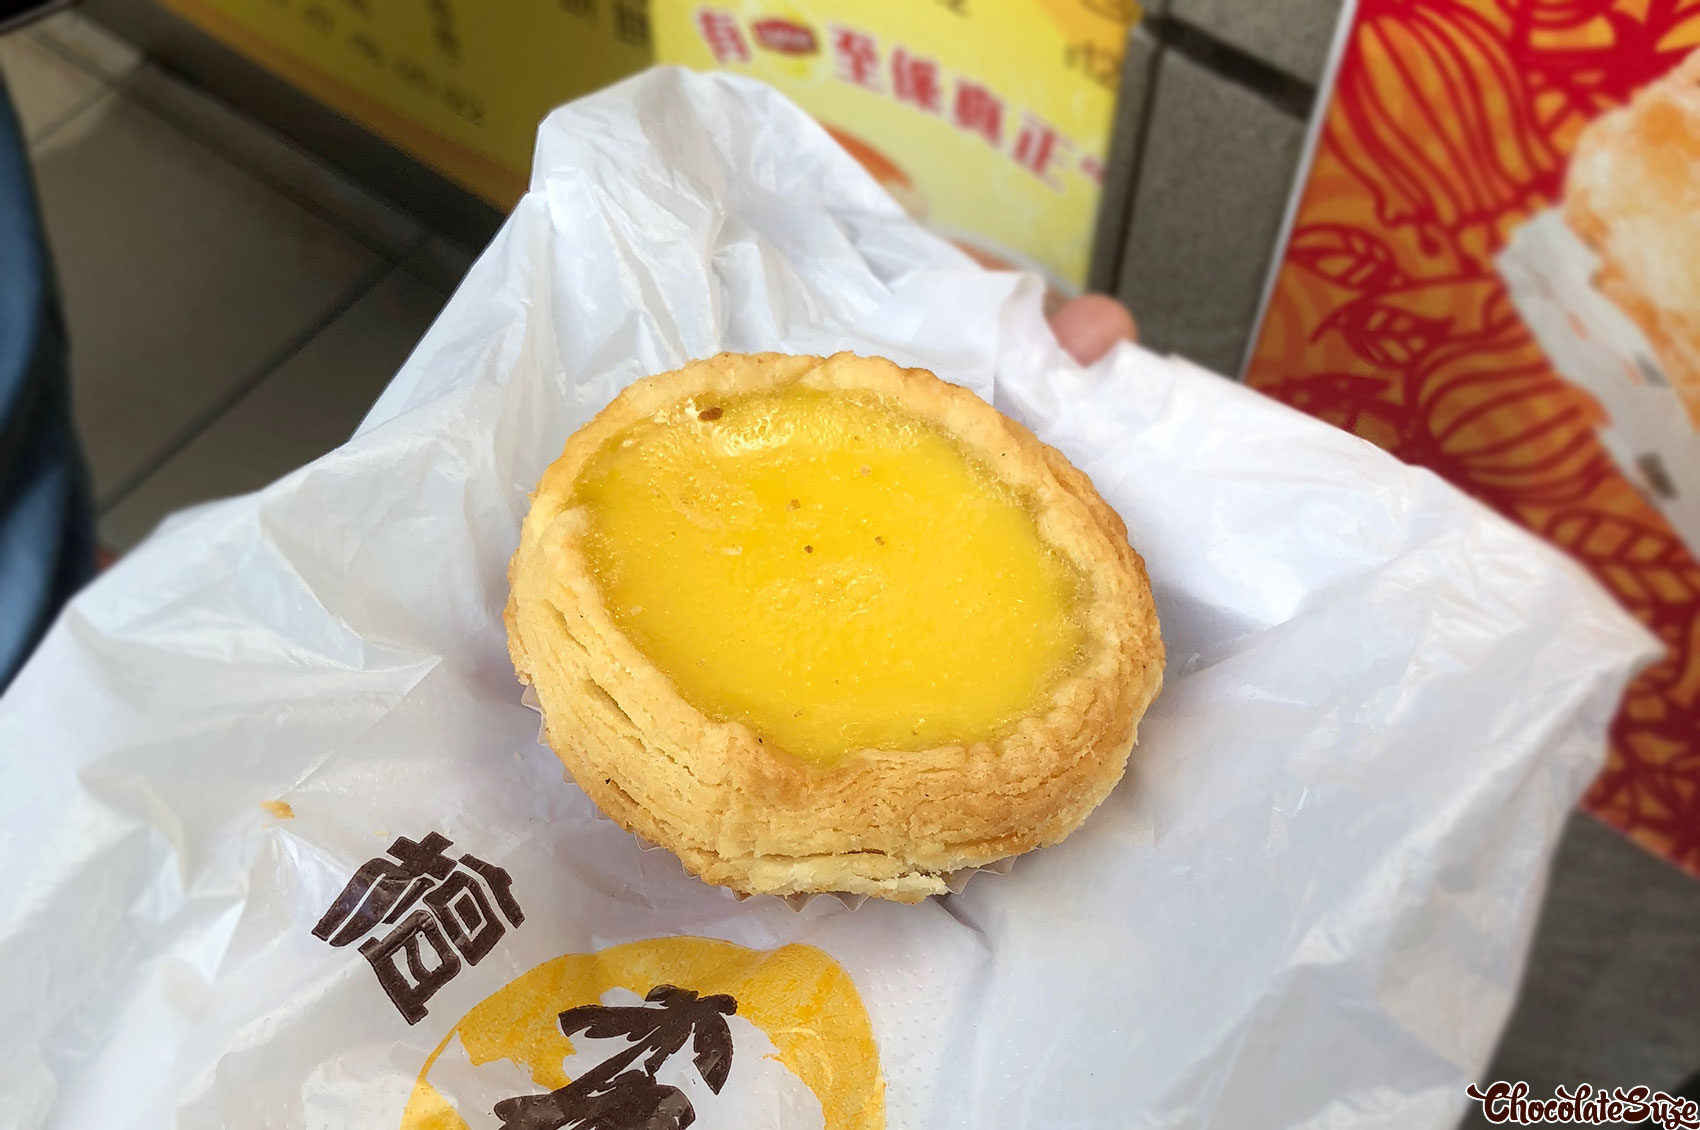 Hong Kong, Honolulu egg tart